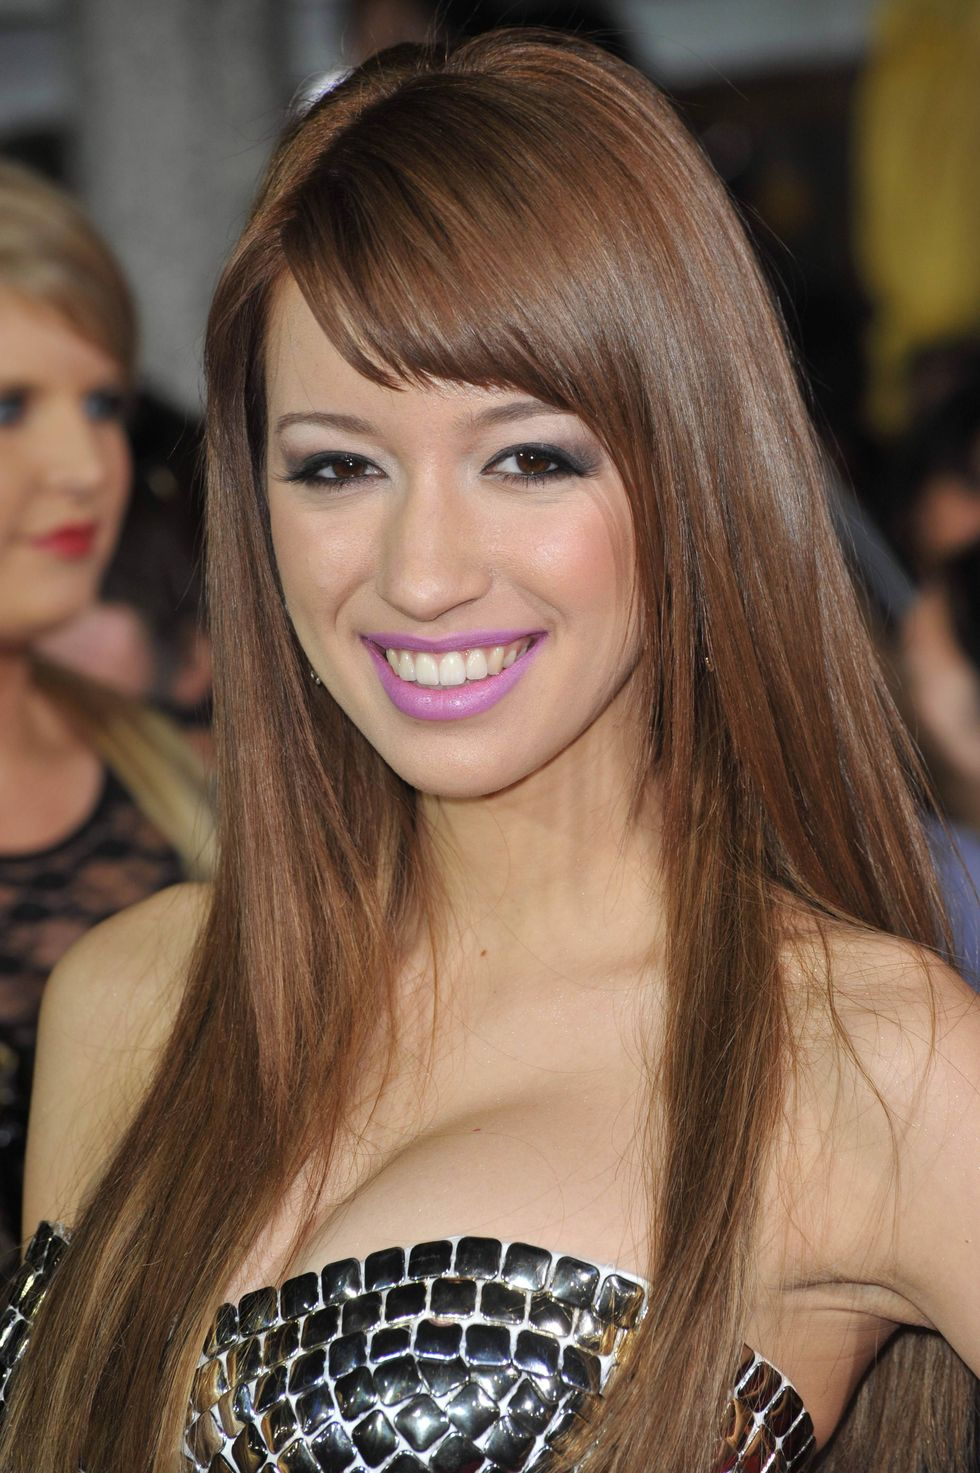 Christian Serratos Hot, Nude & Naked Pics